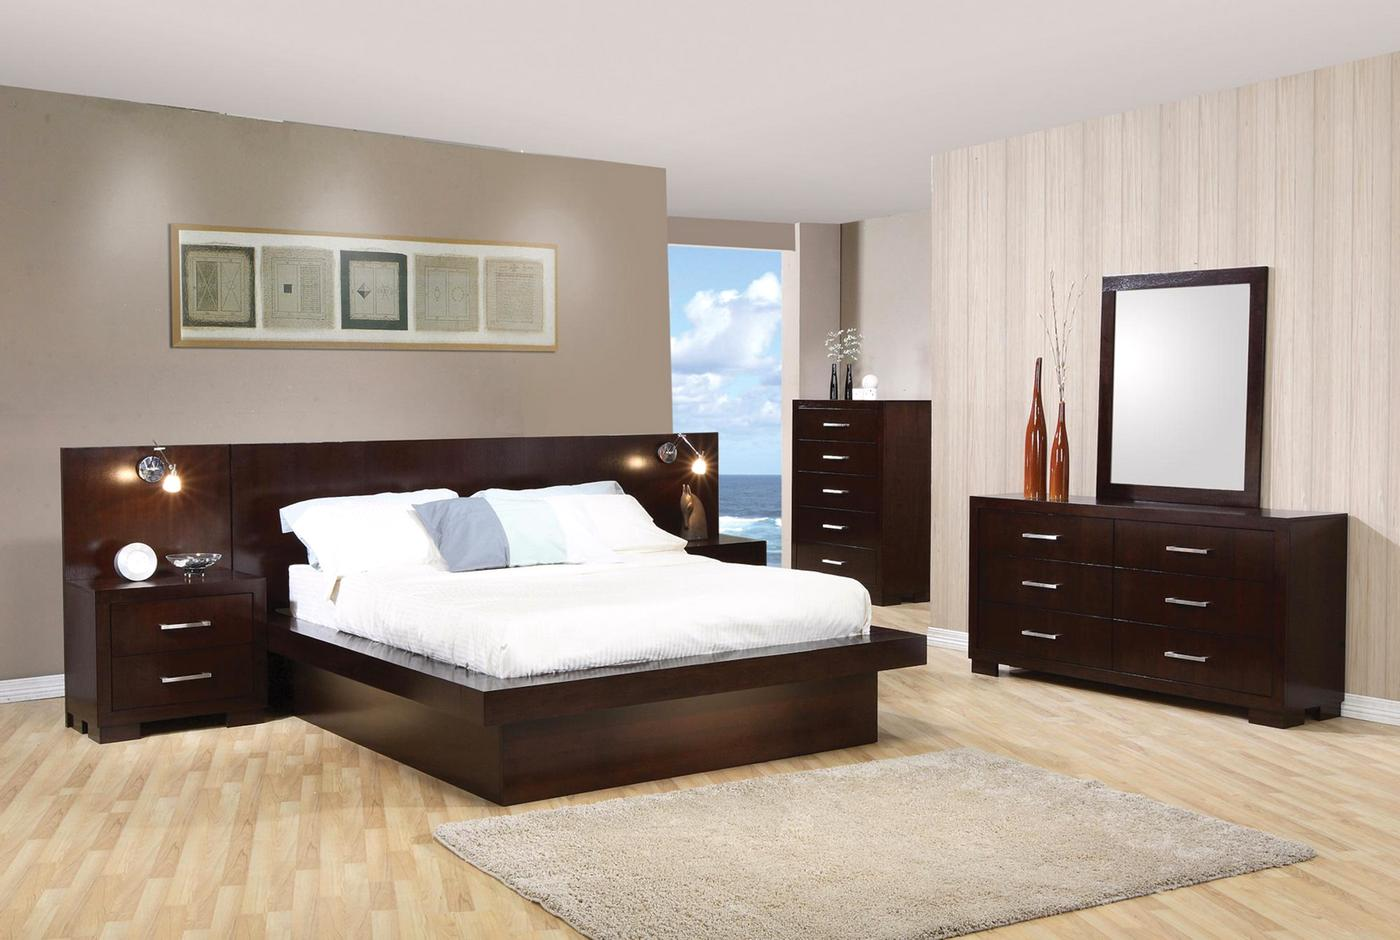 Jessica modern platform cappuccino finish bedroom set free - Contemporary modern bedroom sets ...